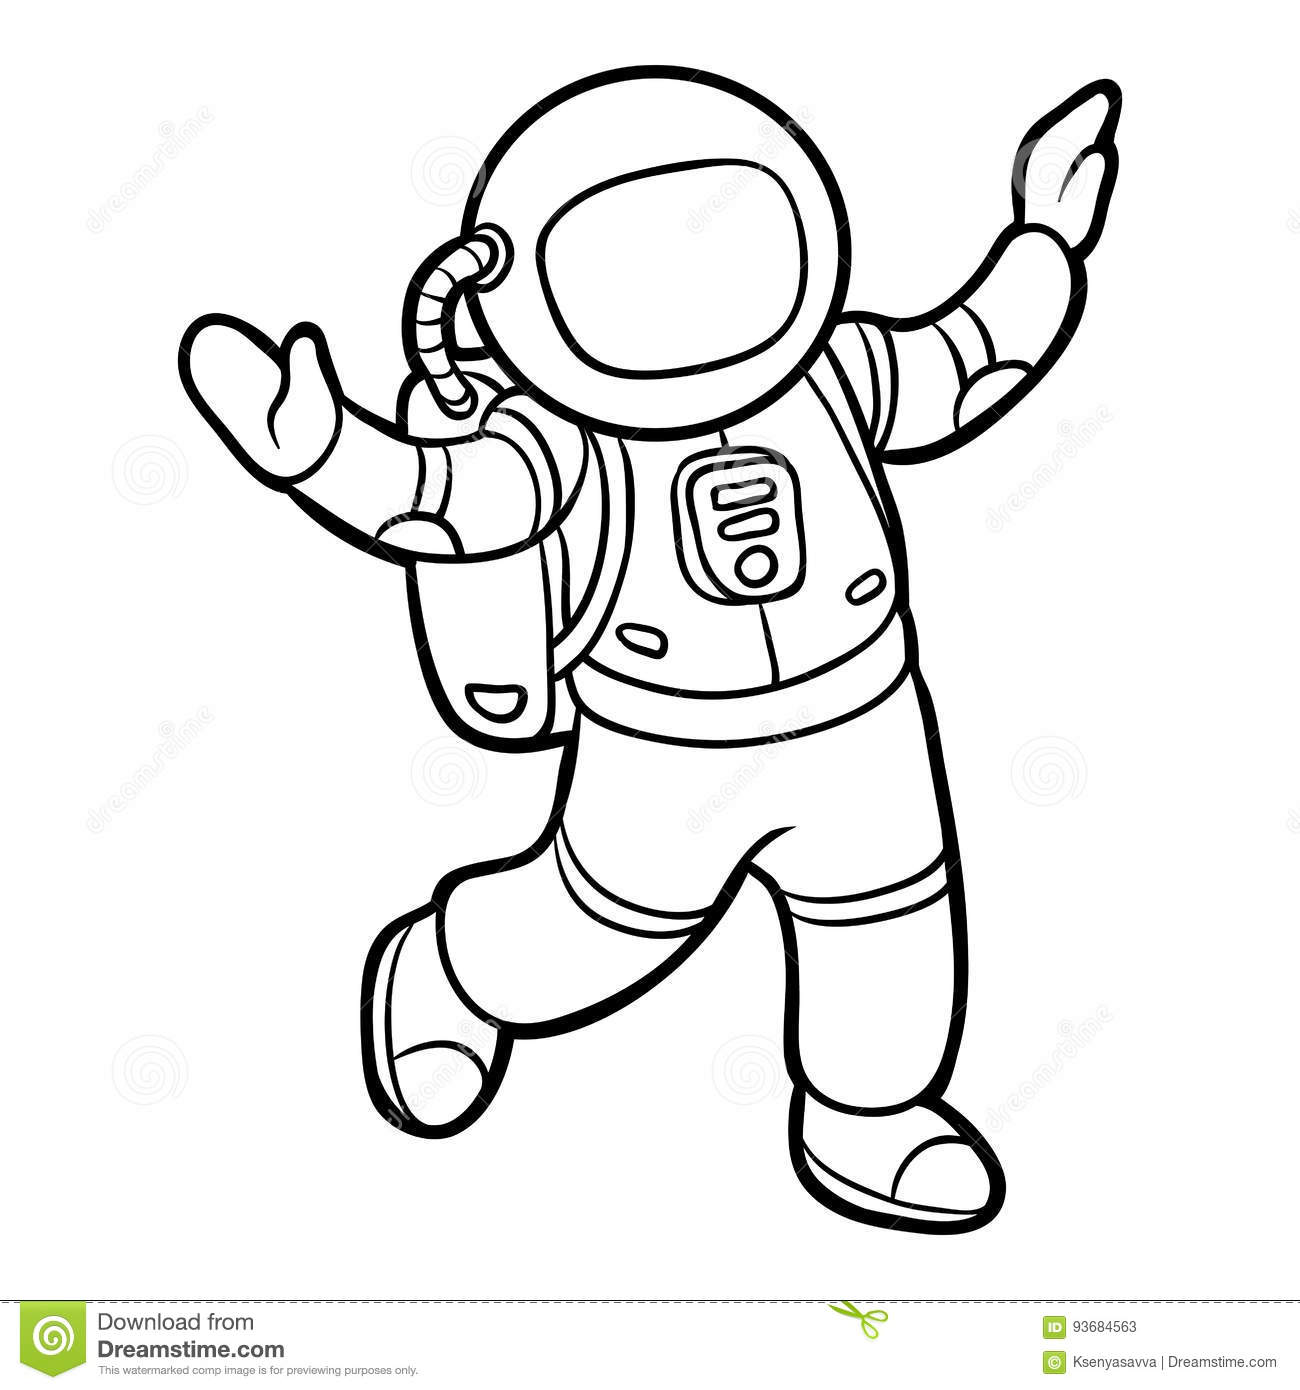 Coloring Book Astronaut Stock Vector Illustration Of